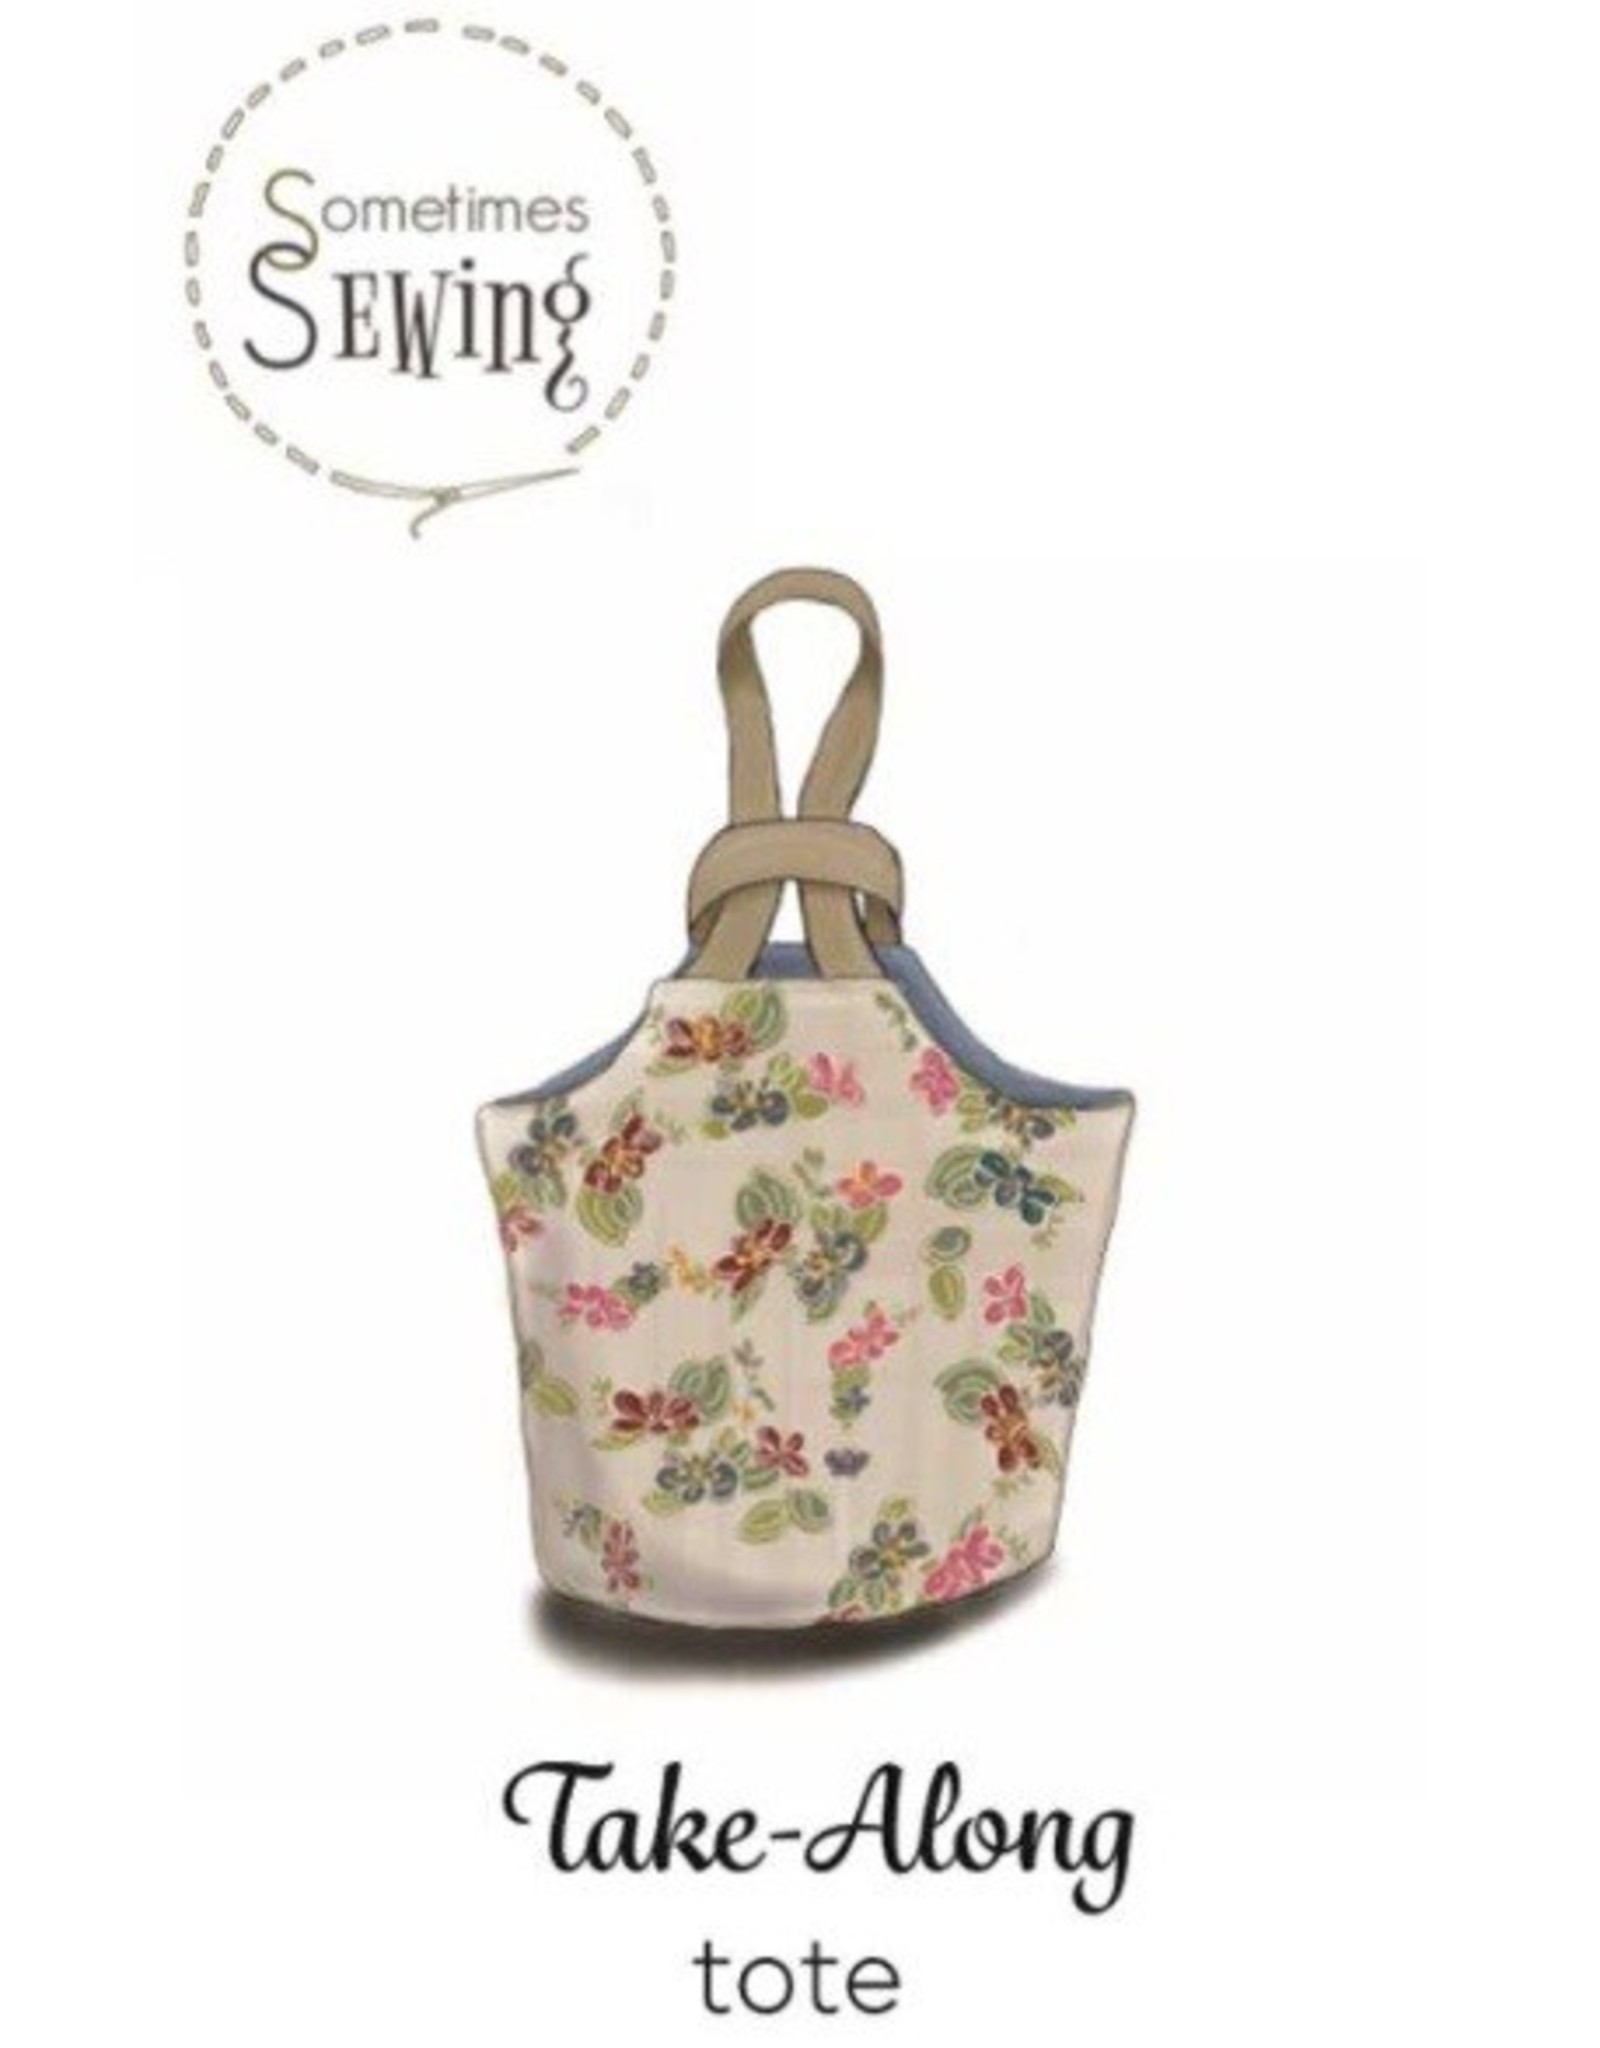 Sometimes Sewing Take Along Tote Sewing Pattern